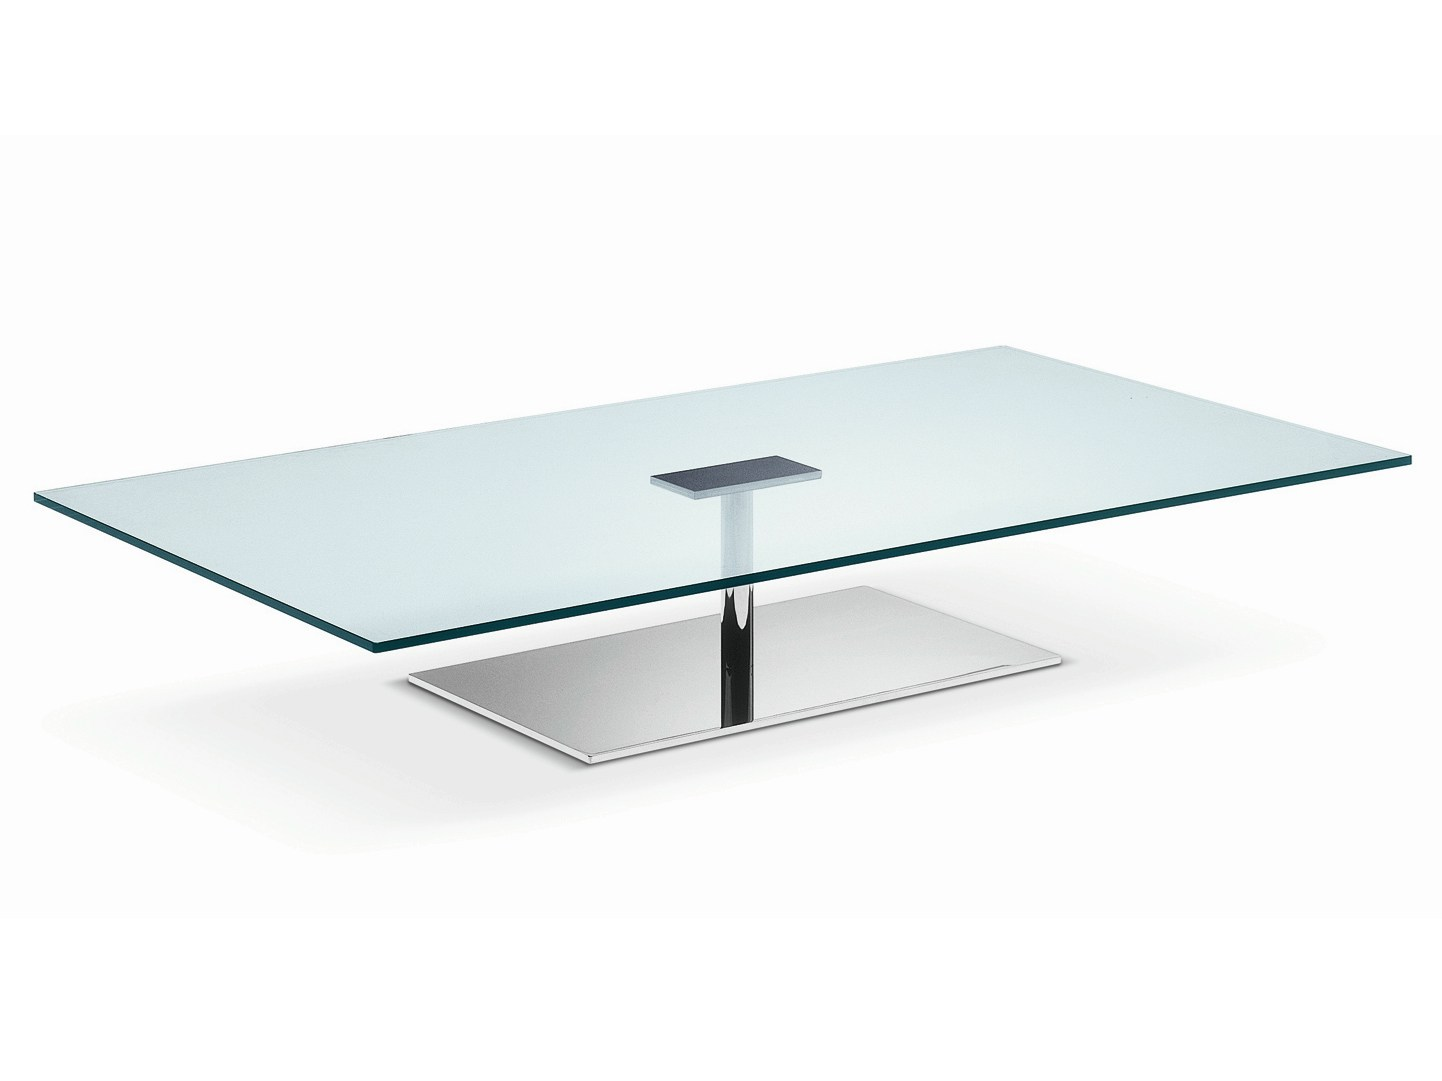 Farniente table basse rectangulaire by t d tonelli design - Table basse rectangulaire design ...